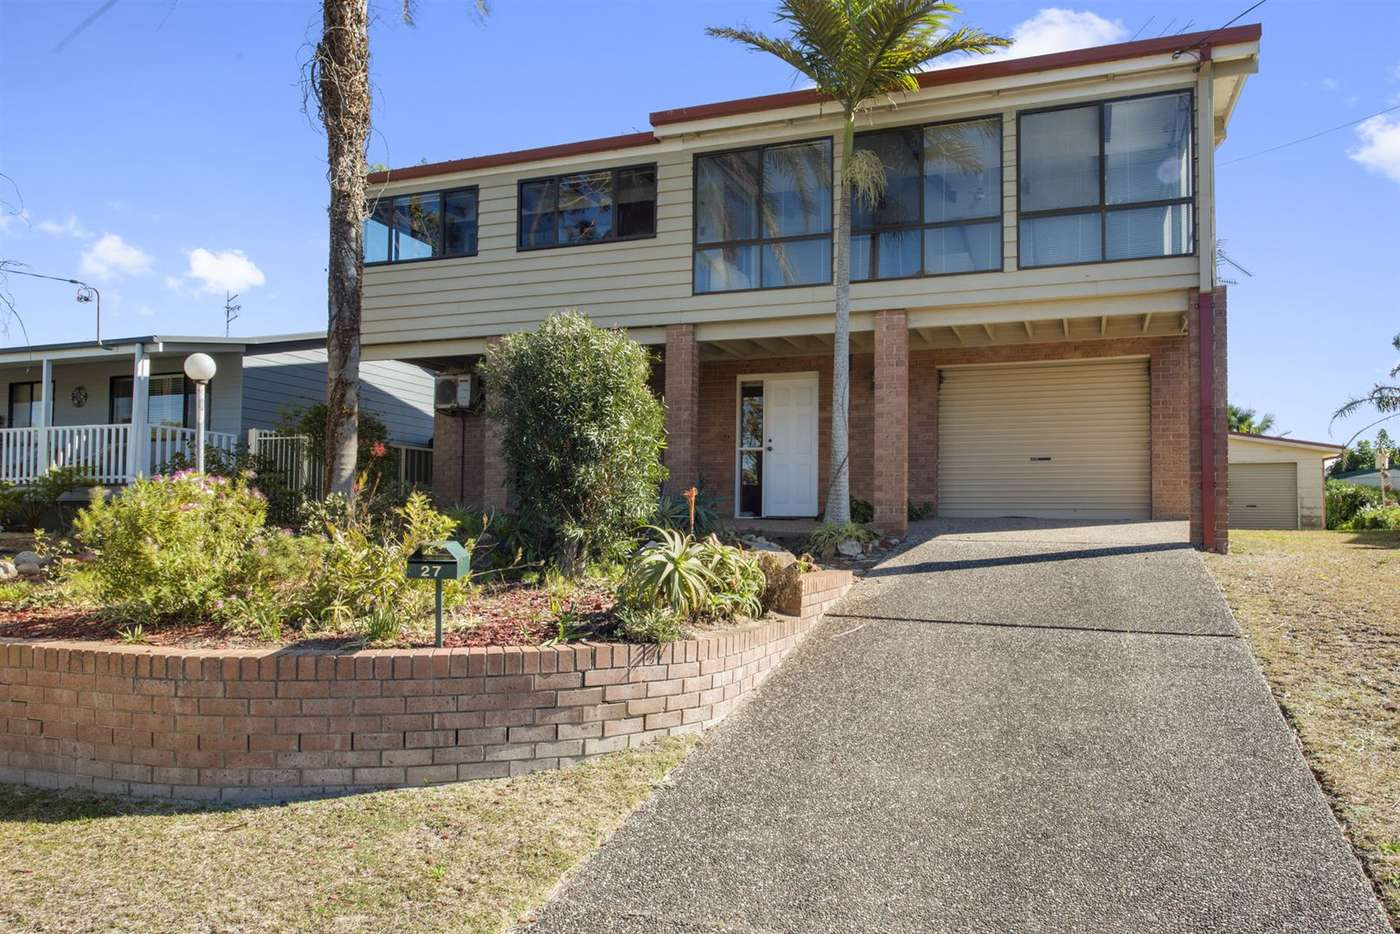 Main view of Homely house listing, 27 Torquay Drive, Lake Tabourie NSW 2539